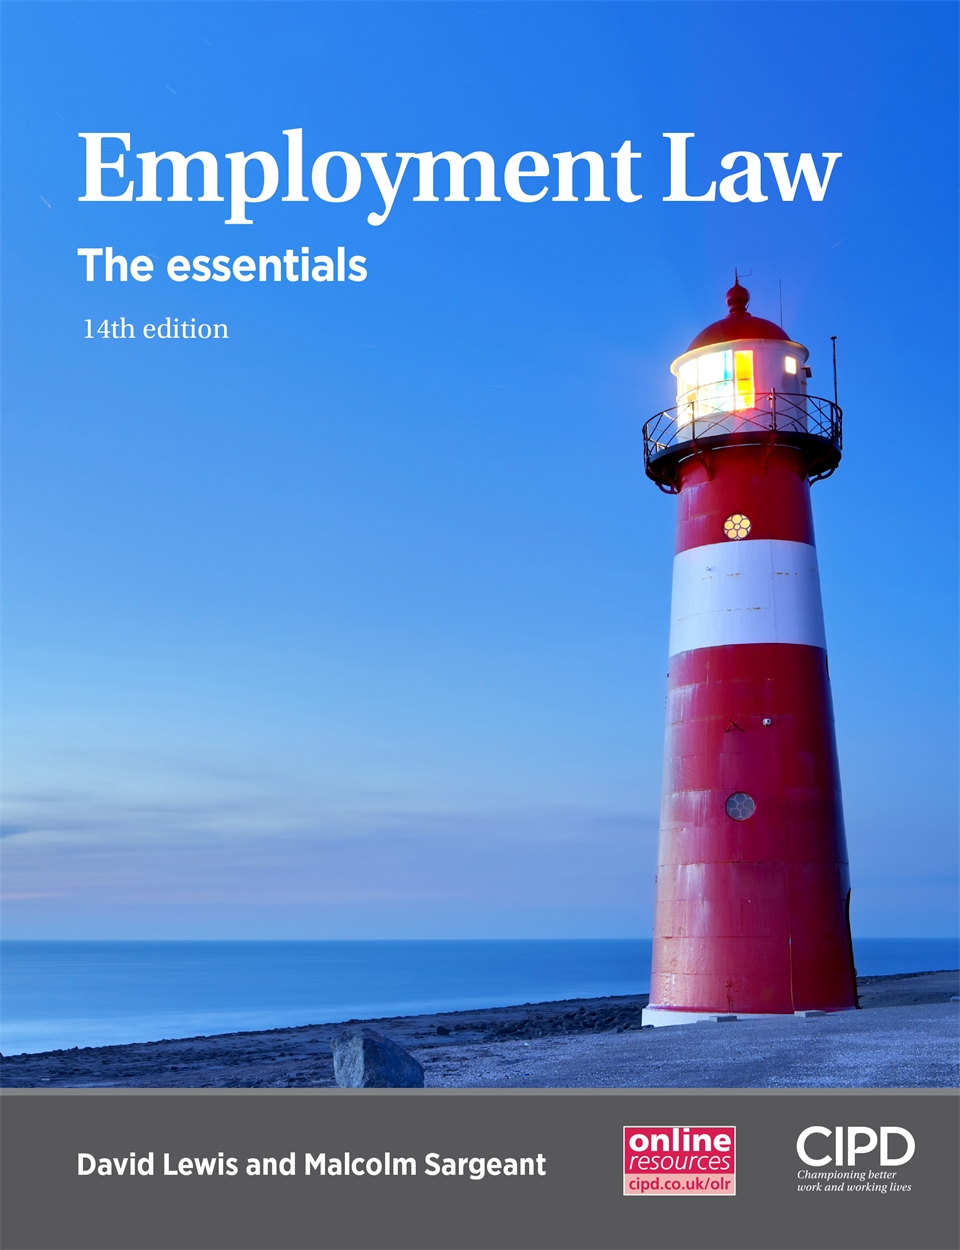 Employment Law (9781843984382)